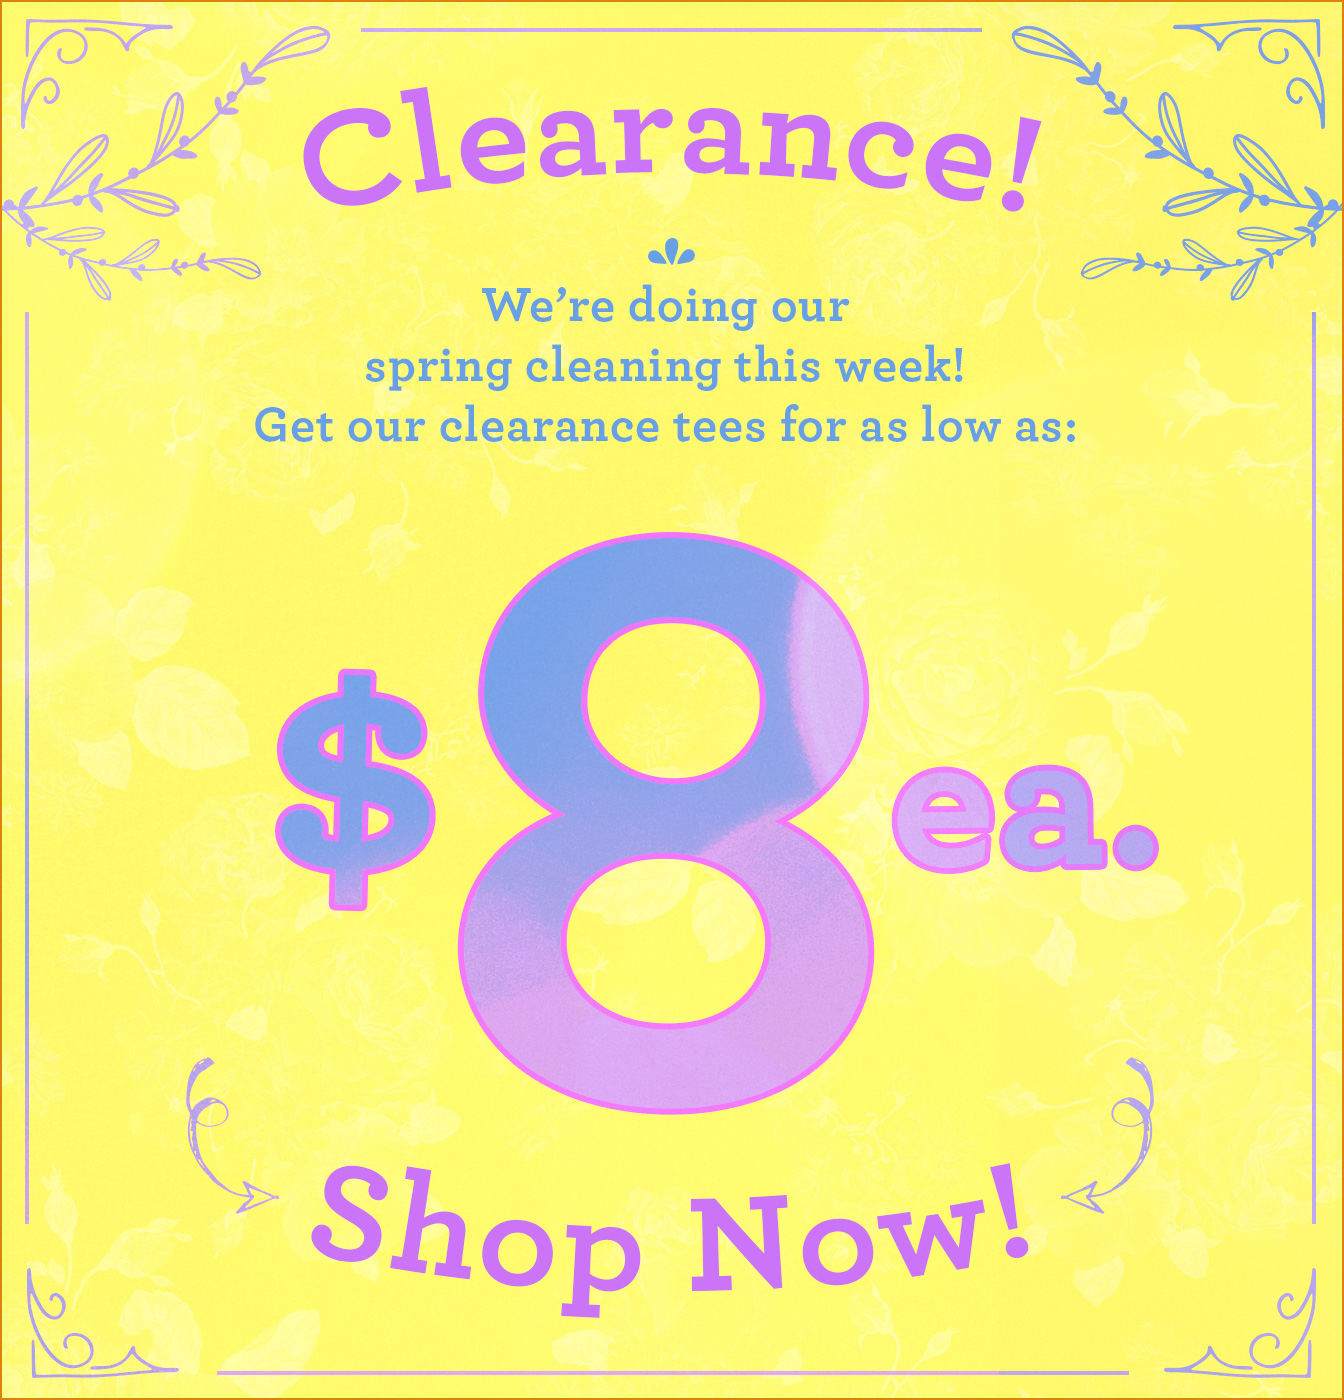 Spring Cleaning! Come take any clearance tee for only $8 each!